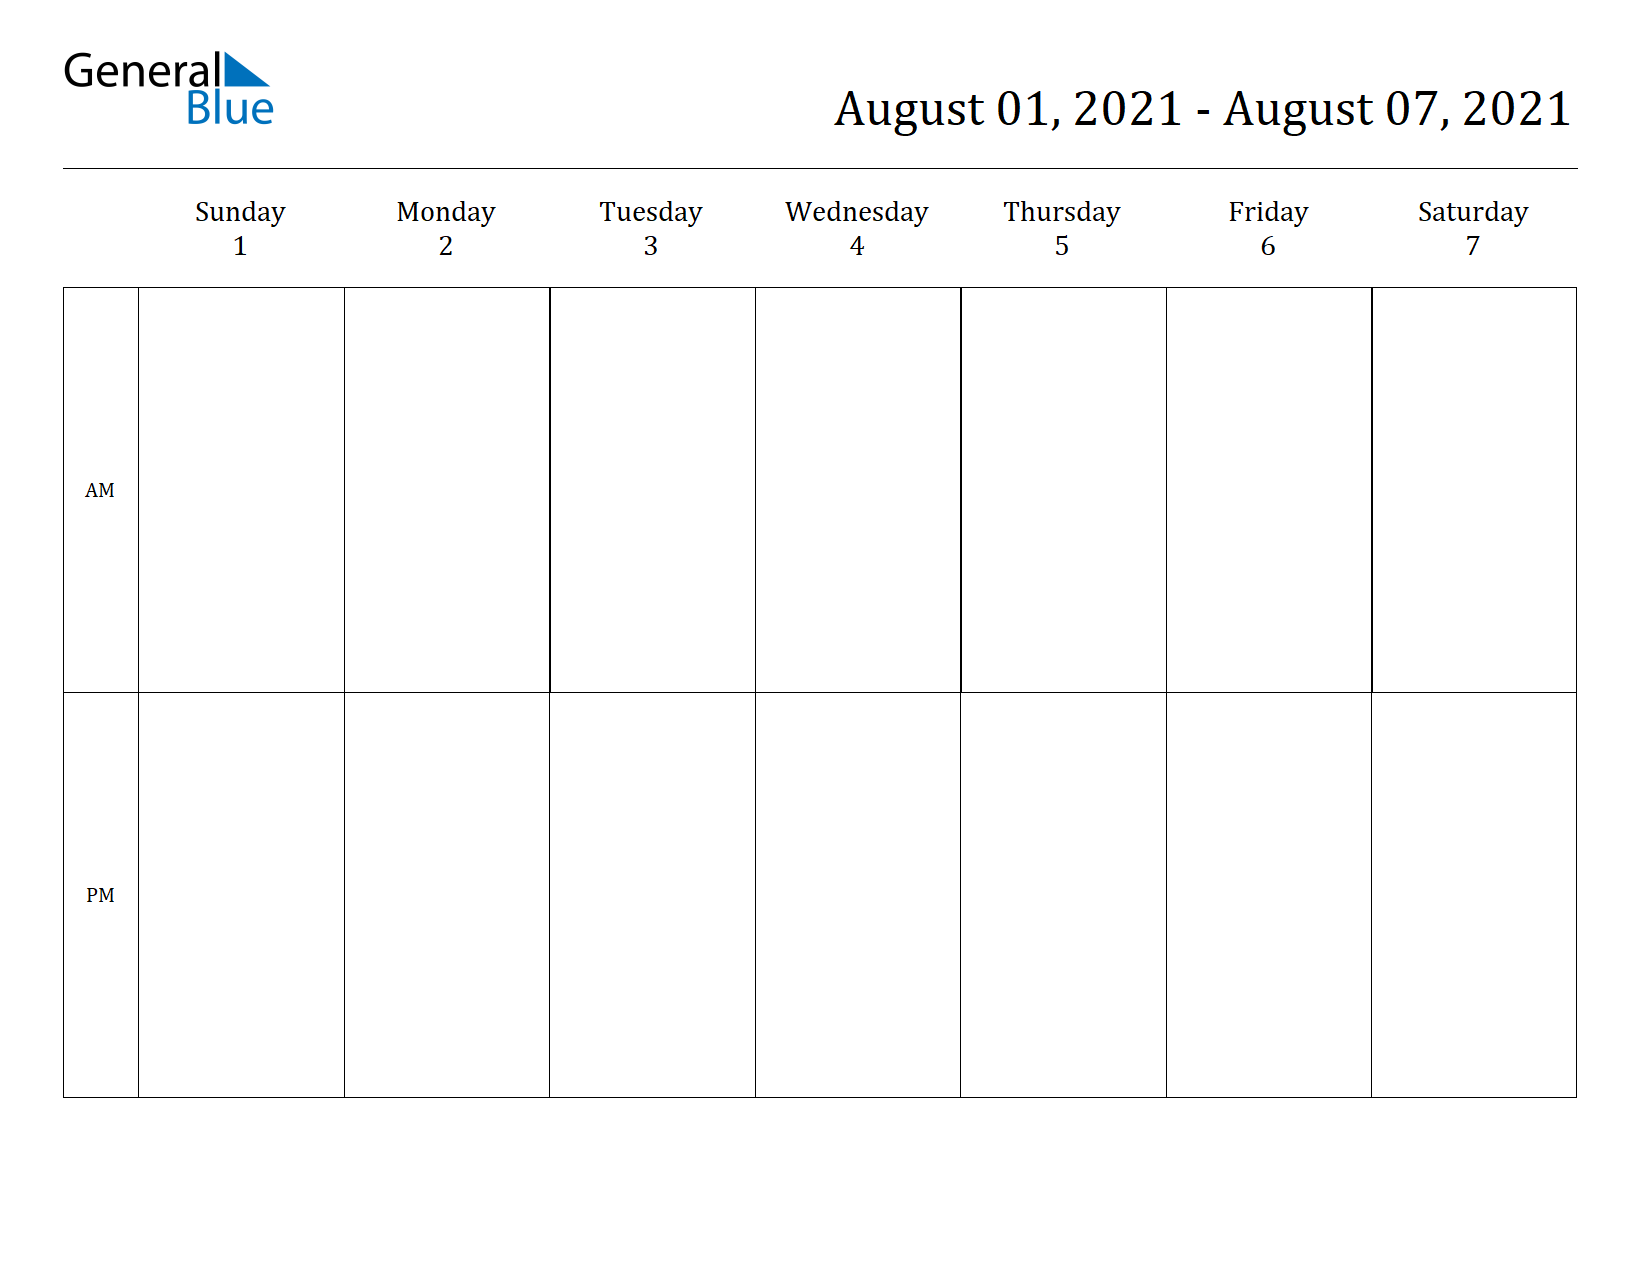 Weekly Calendar for Aug 01, 2021 to Aug 07, 2021